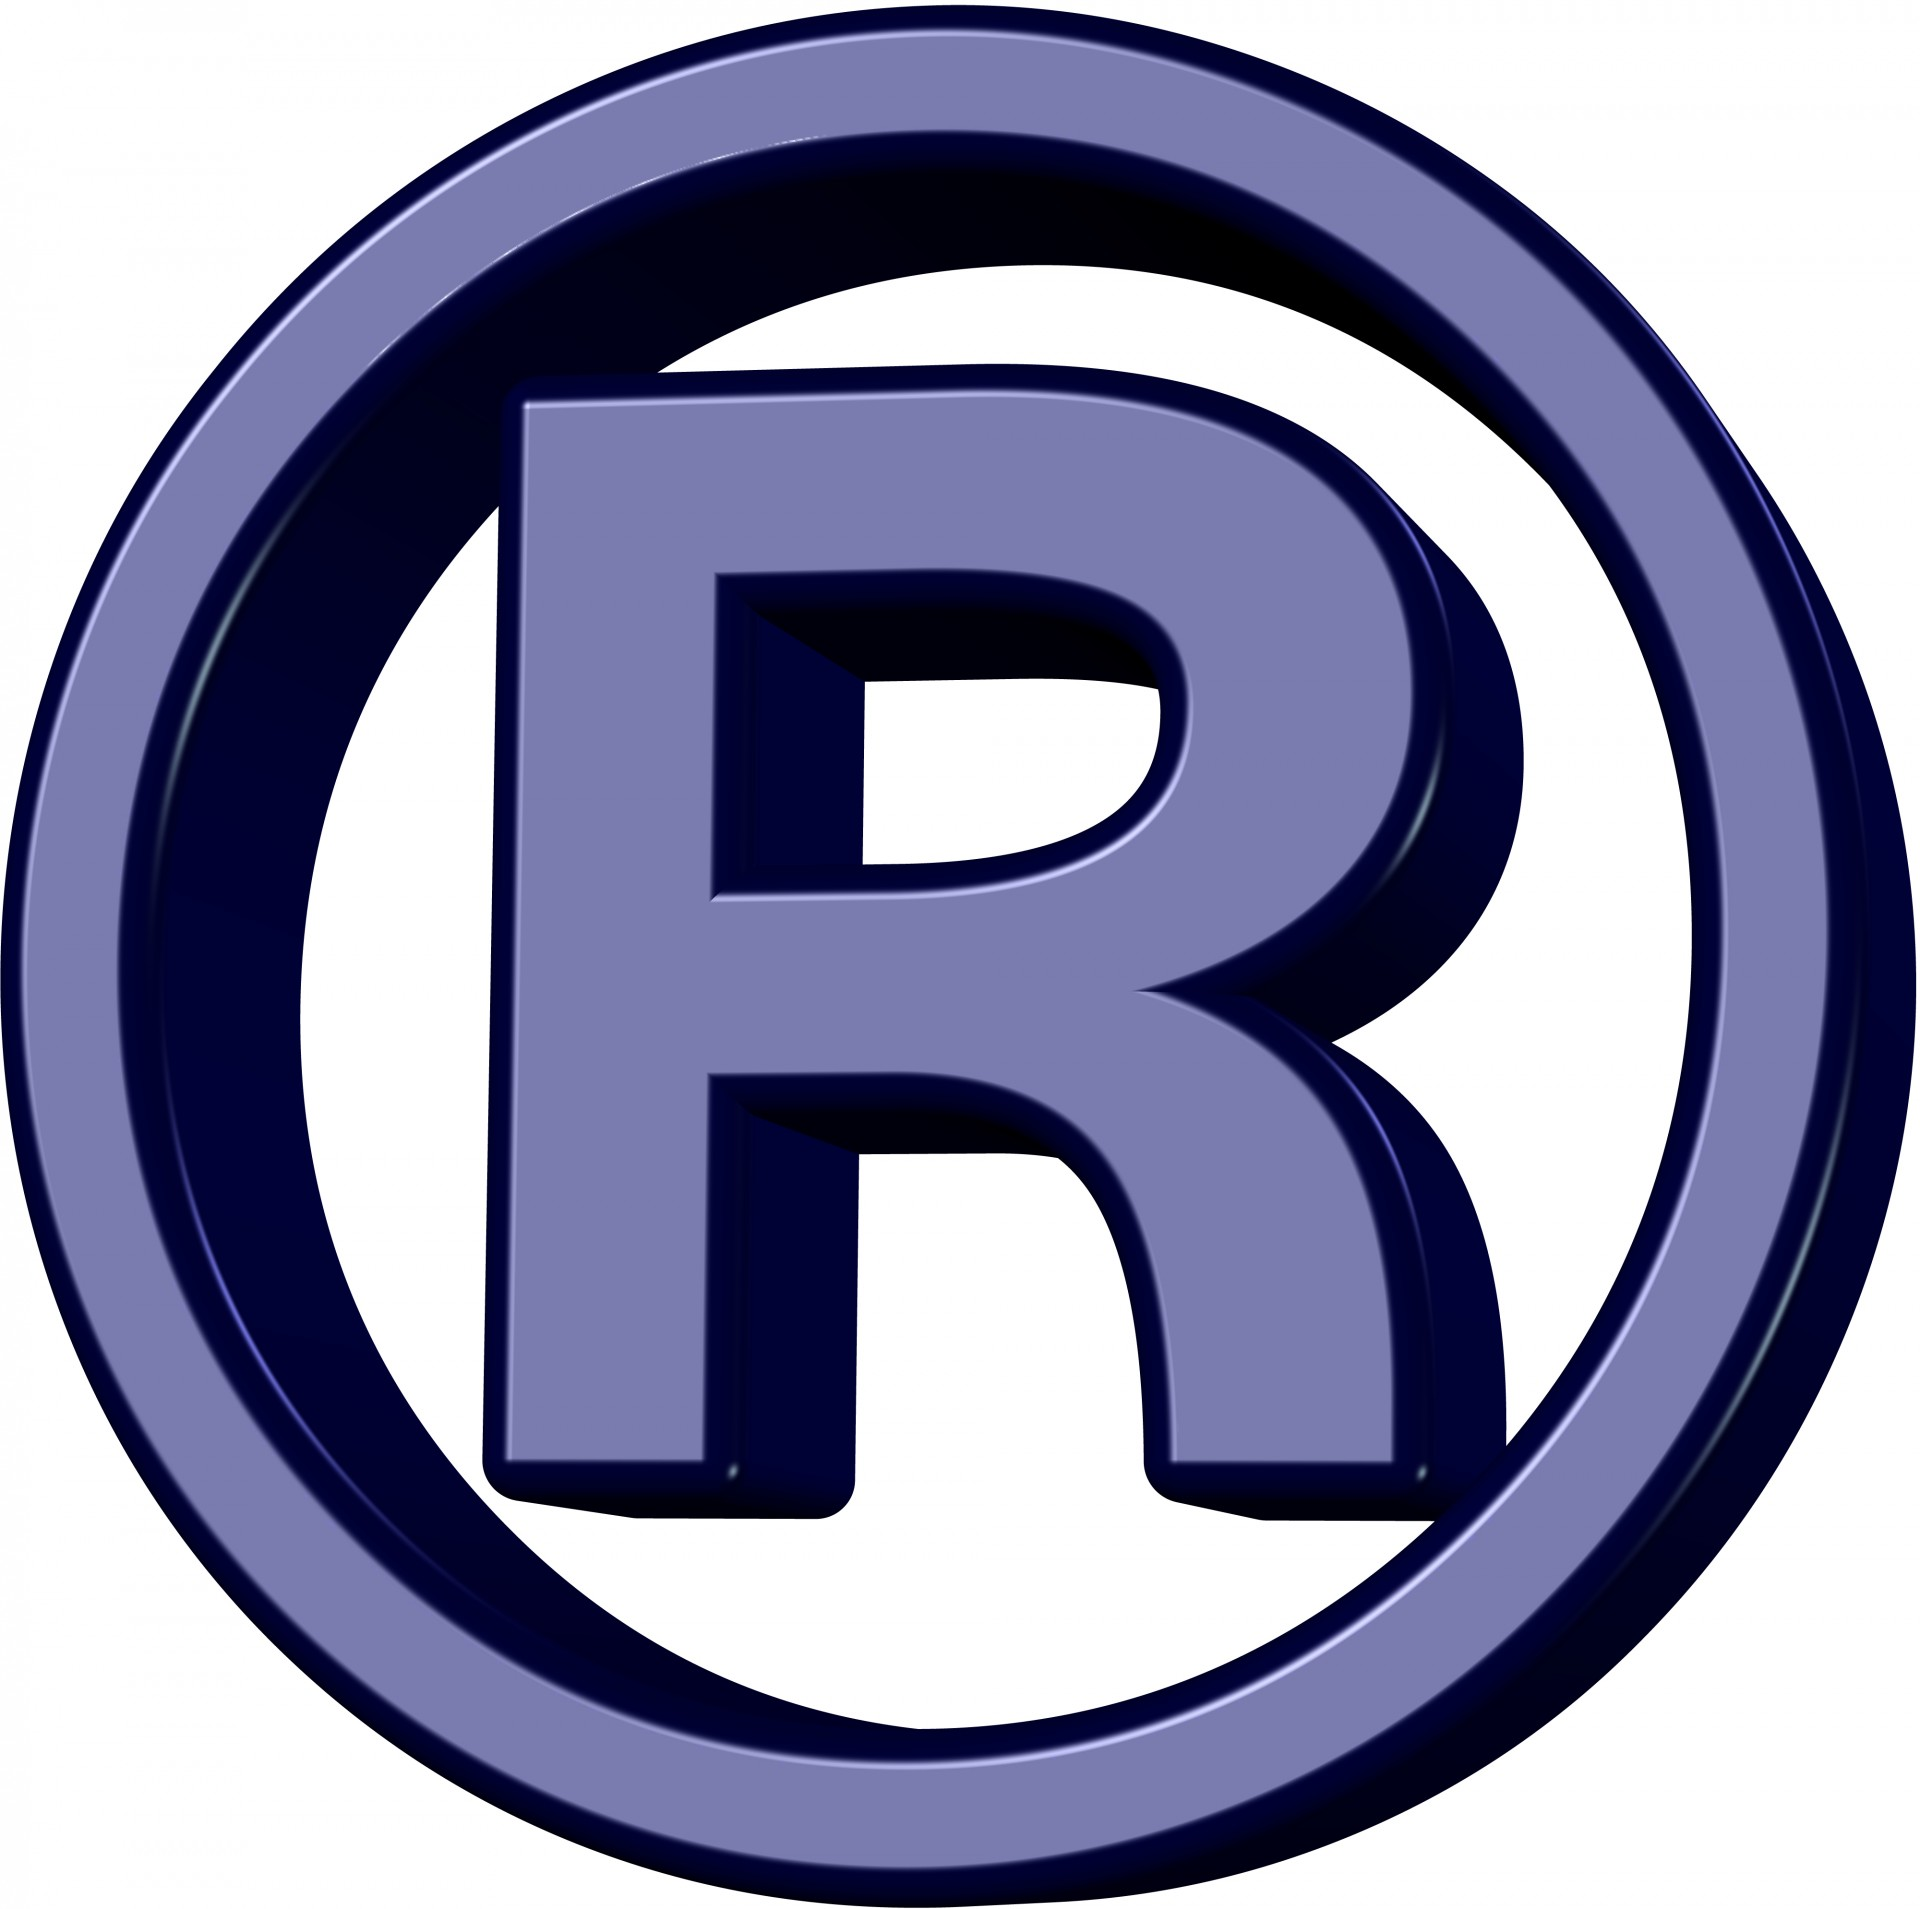 Trademark registration symbol image collections symbol and sign welcome to the patent and trademark resource center denver trademark symbol buycottarizona biocorpaavc